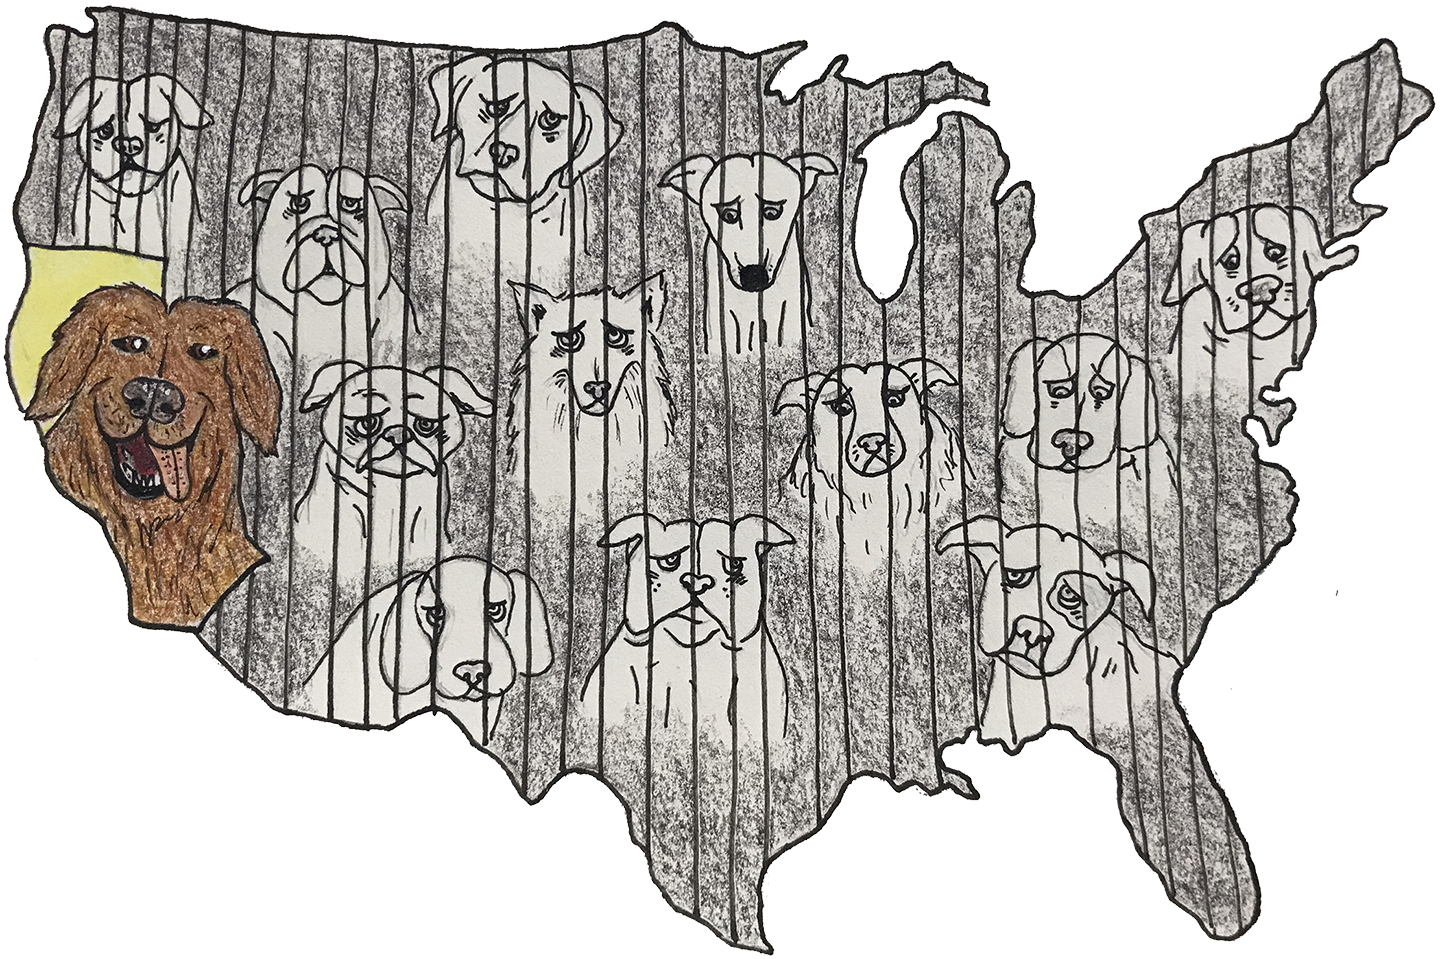 Trade drawing dog shelter. Pet rescue bill furthers